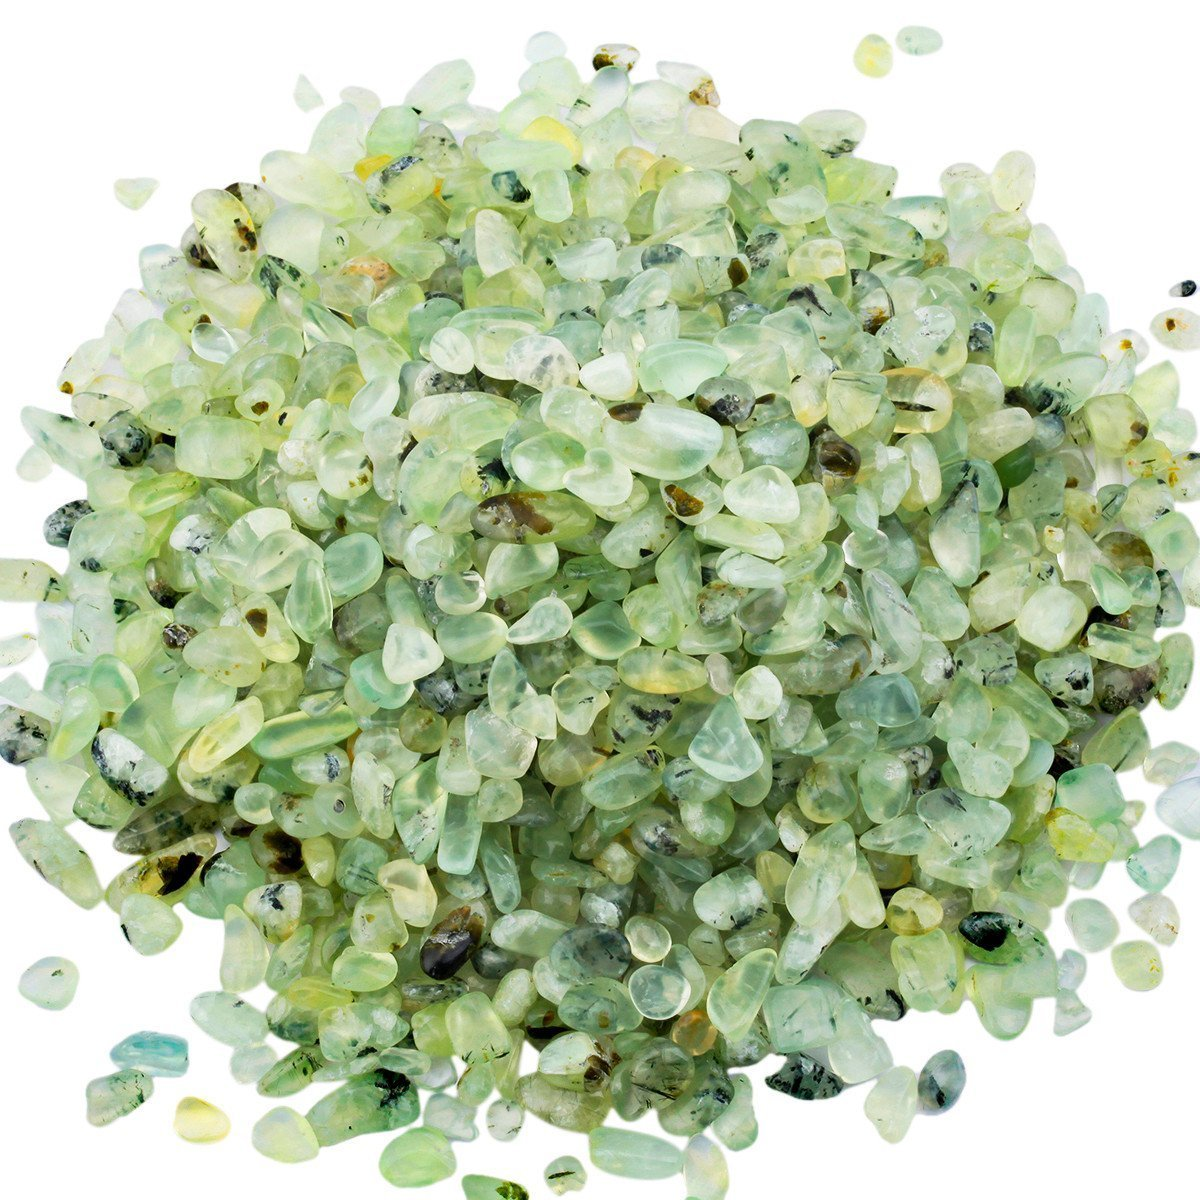 Zungtin 450g Prehnite polished Chips Stone,Crushed Crystal Quartz Pieces,Irregular Shaped Stones